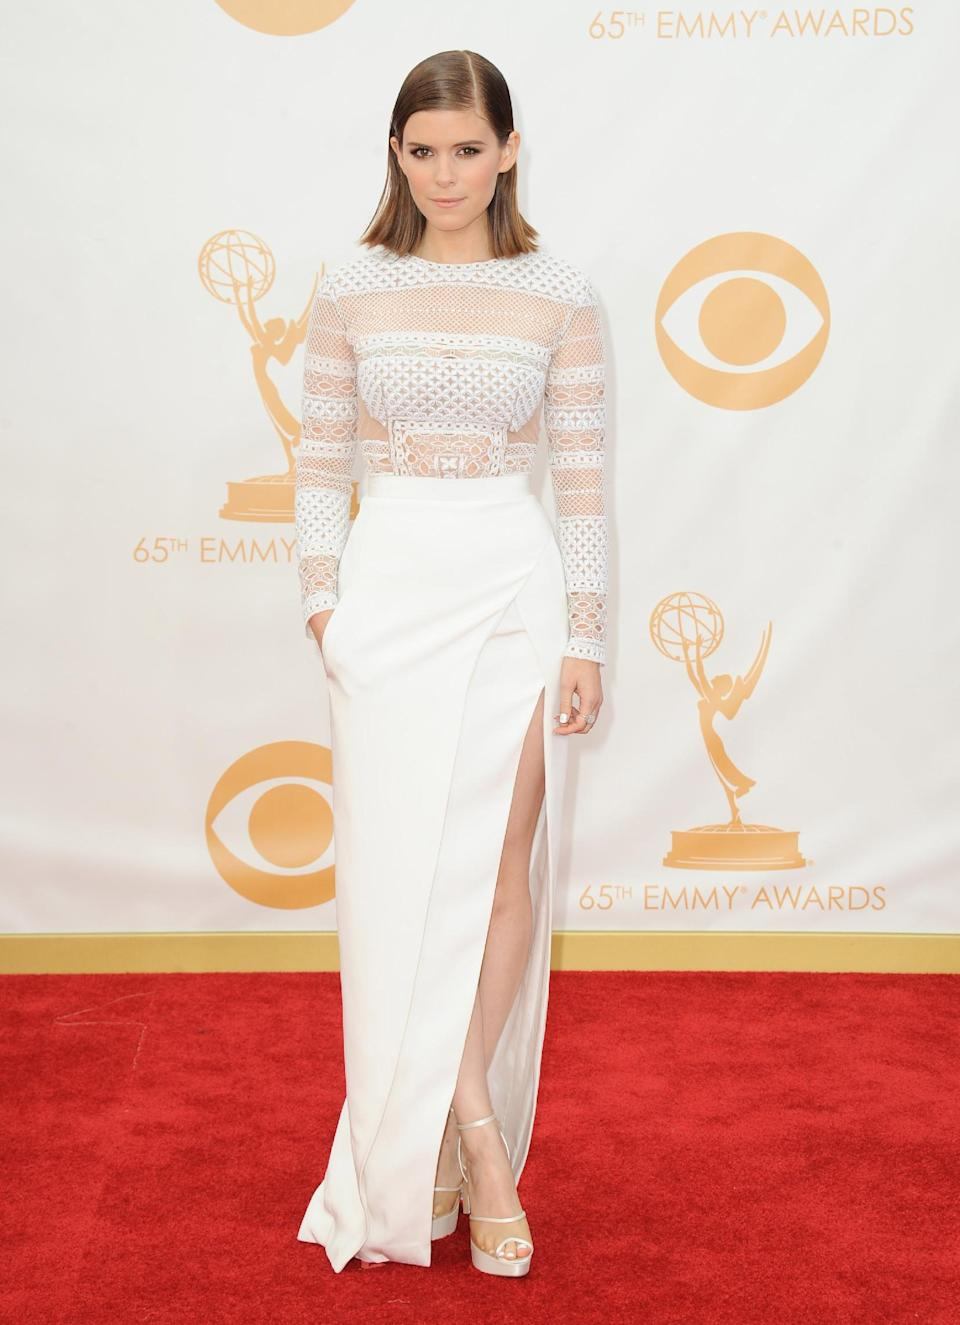 Kate Mara arrives at the 65th Primetime Emmy Awards at Nokia Theatre on Sunday Sept. 22, 2013, in Los Angeles. (Photo by Jordan Strauss/Invision/AP)